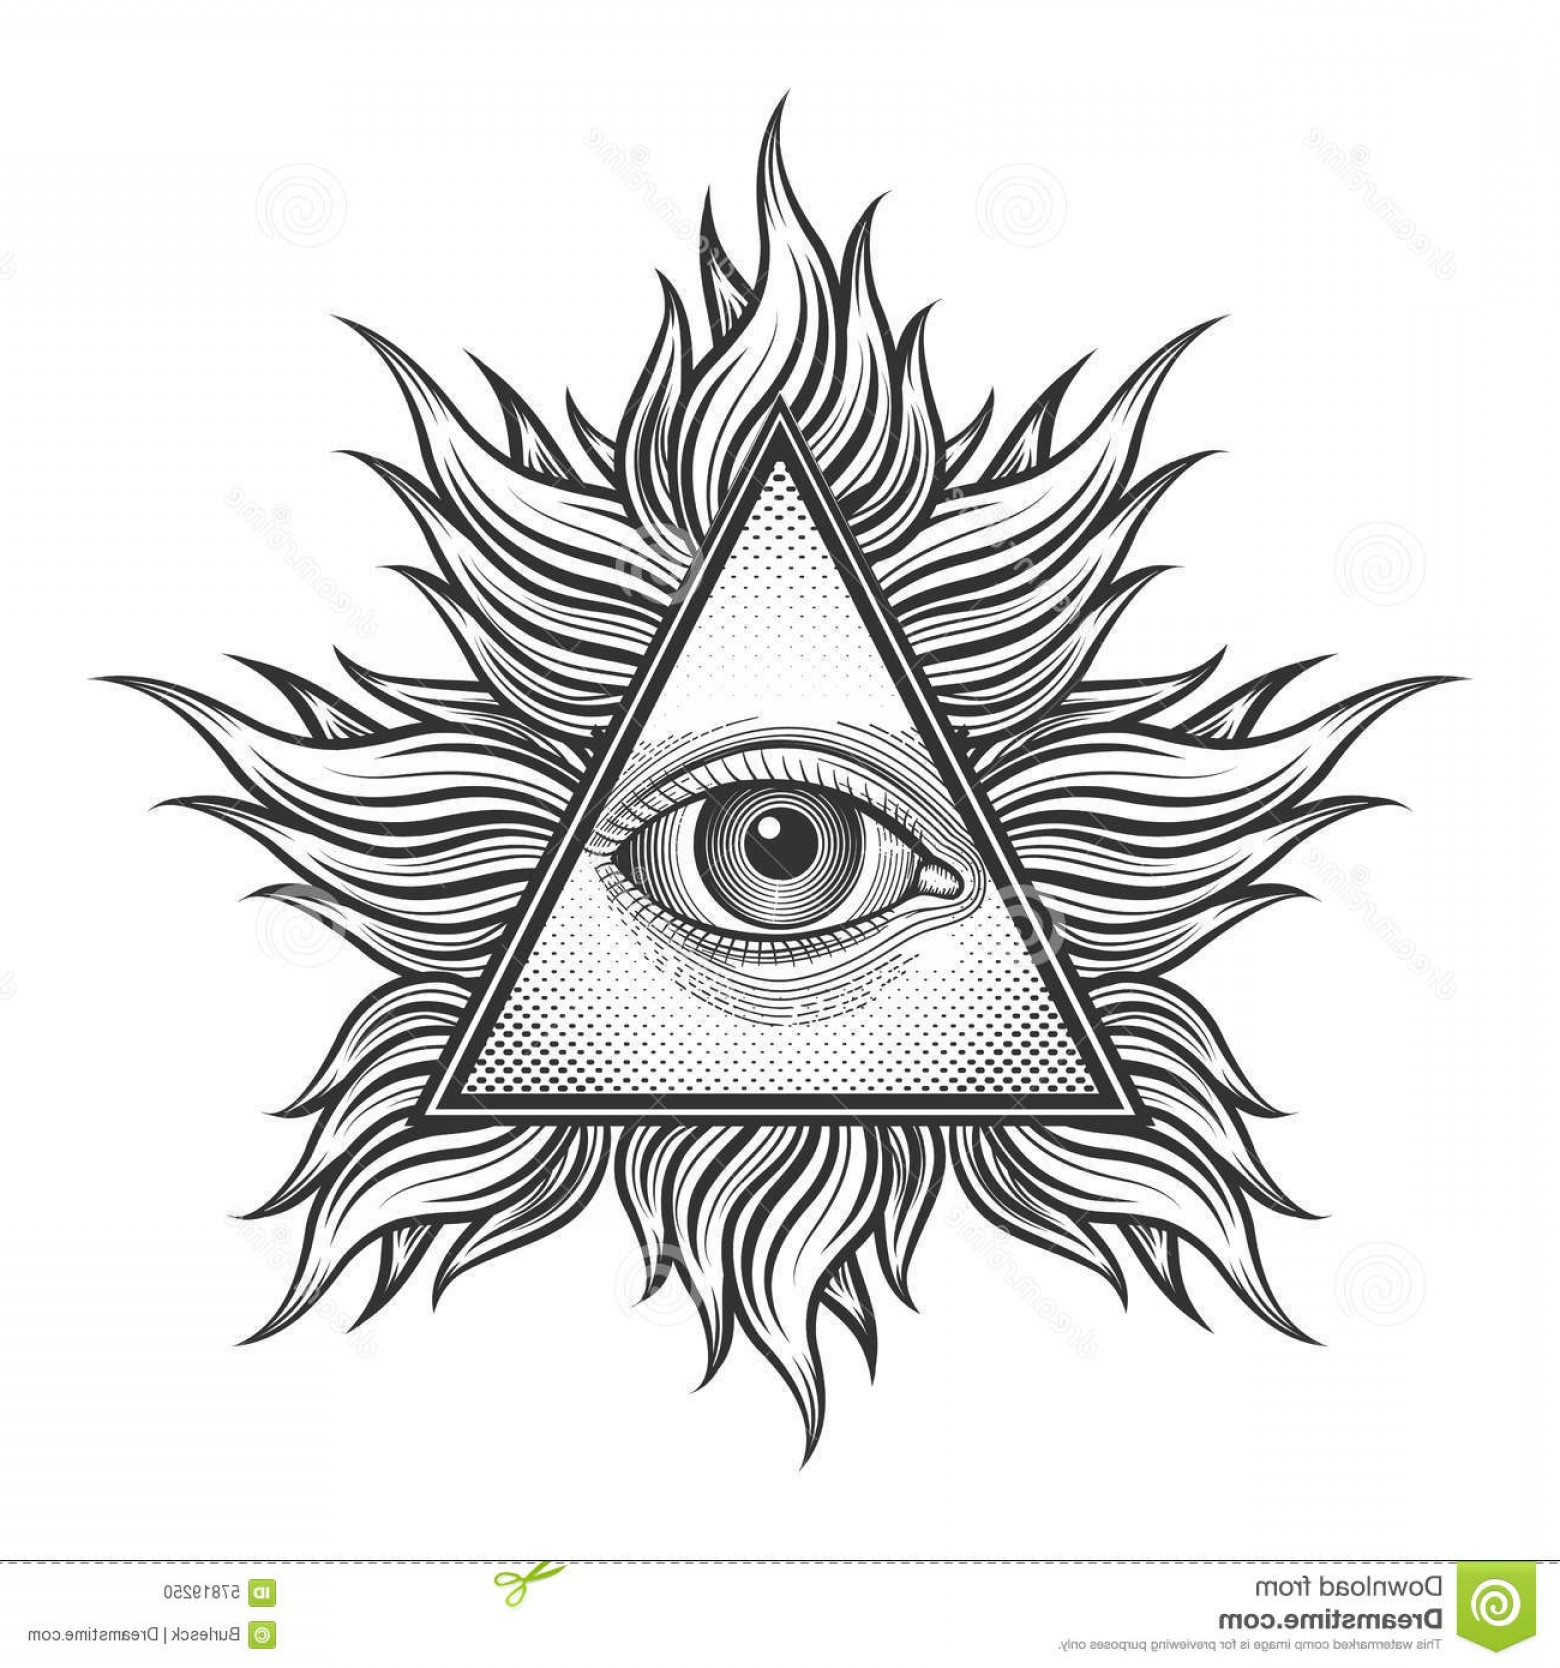 1560x1668 All Seeing Eye Pyramid Symbol In The Engraving Illustration Arenawp